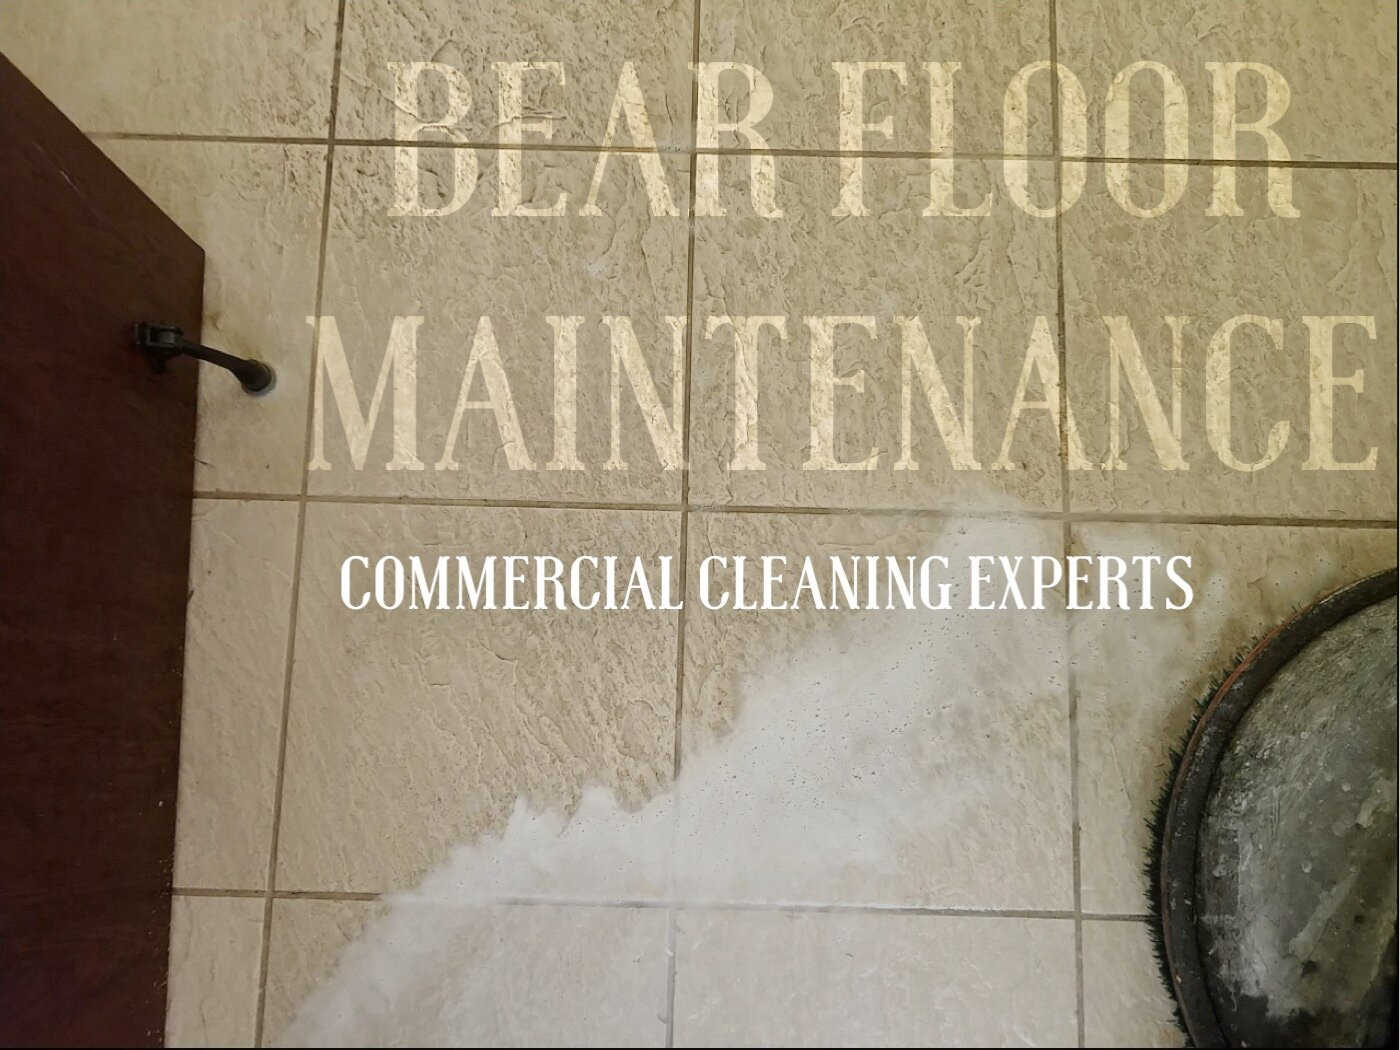 Bear Floor Maintenance Commercial Cleaning Experts